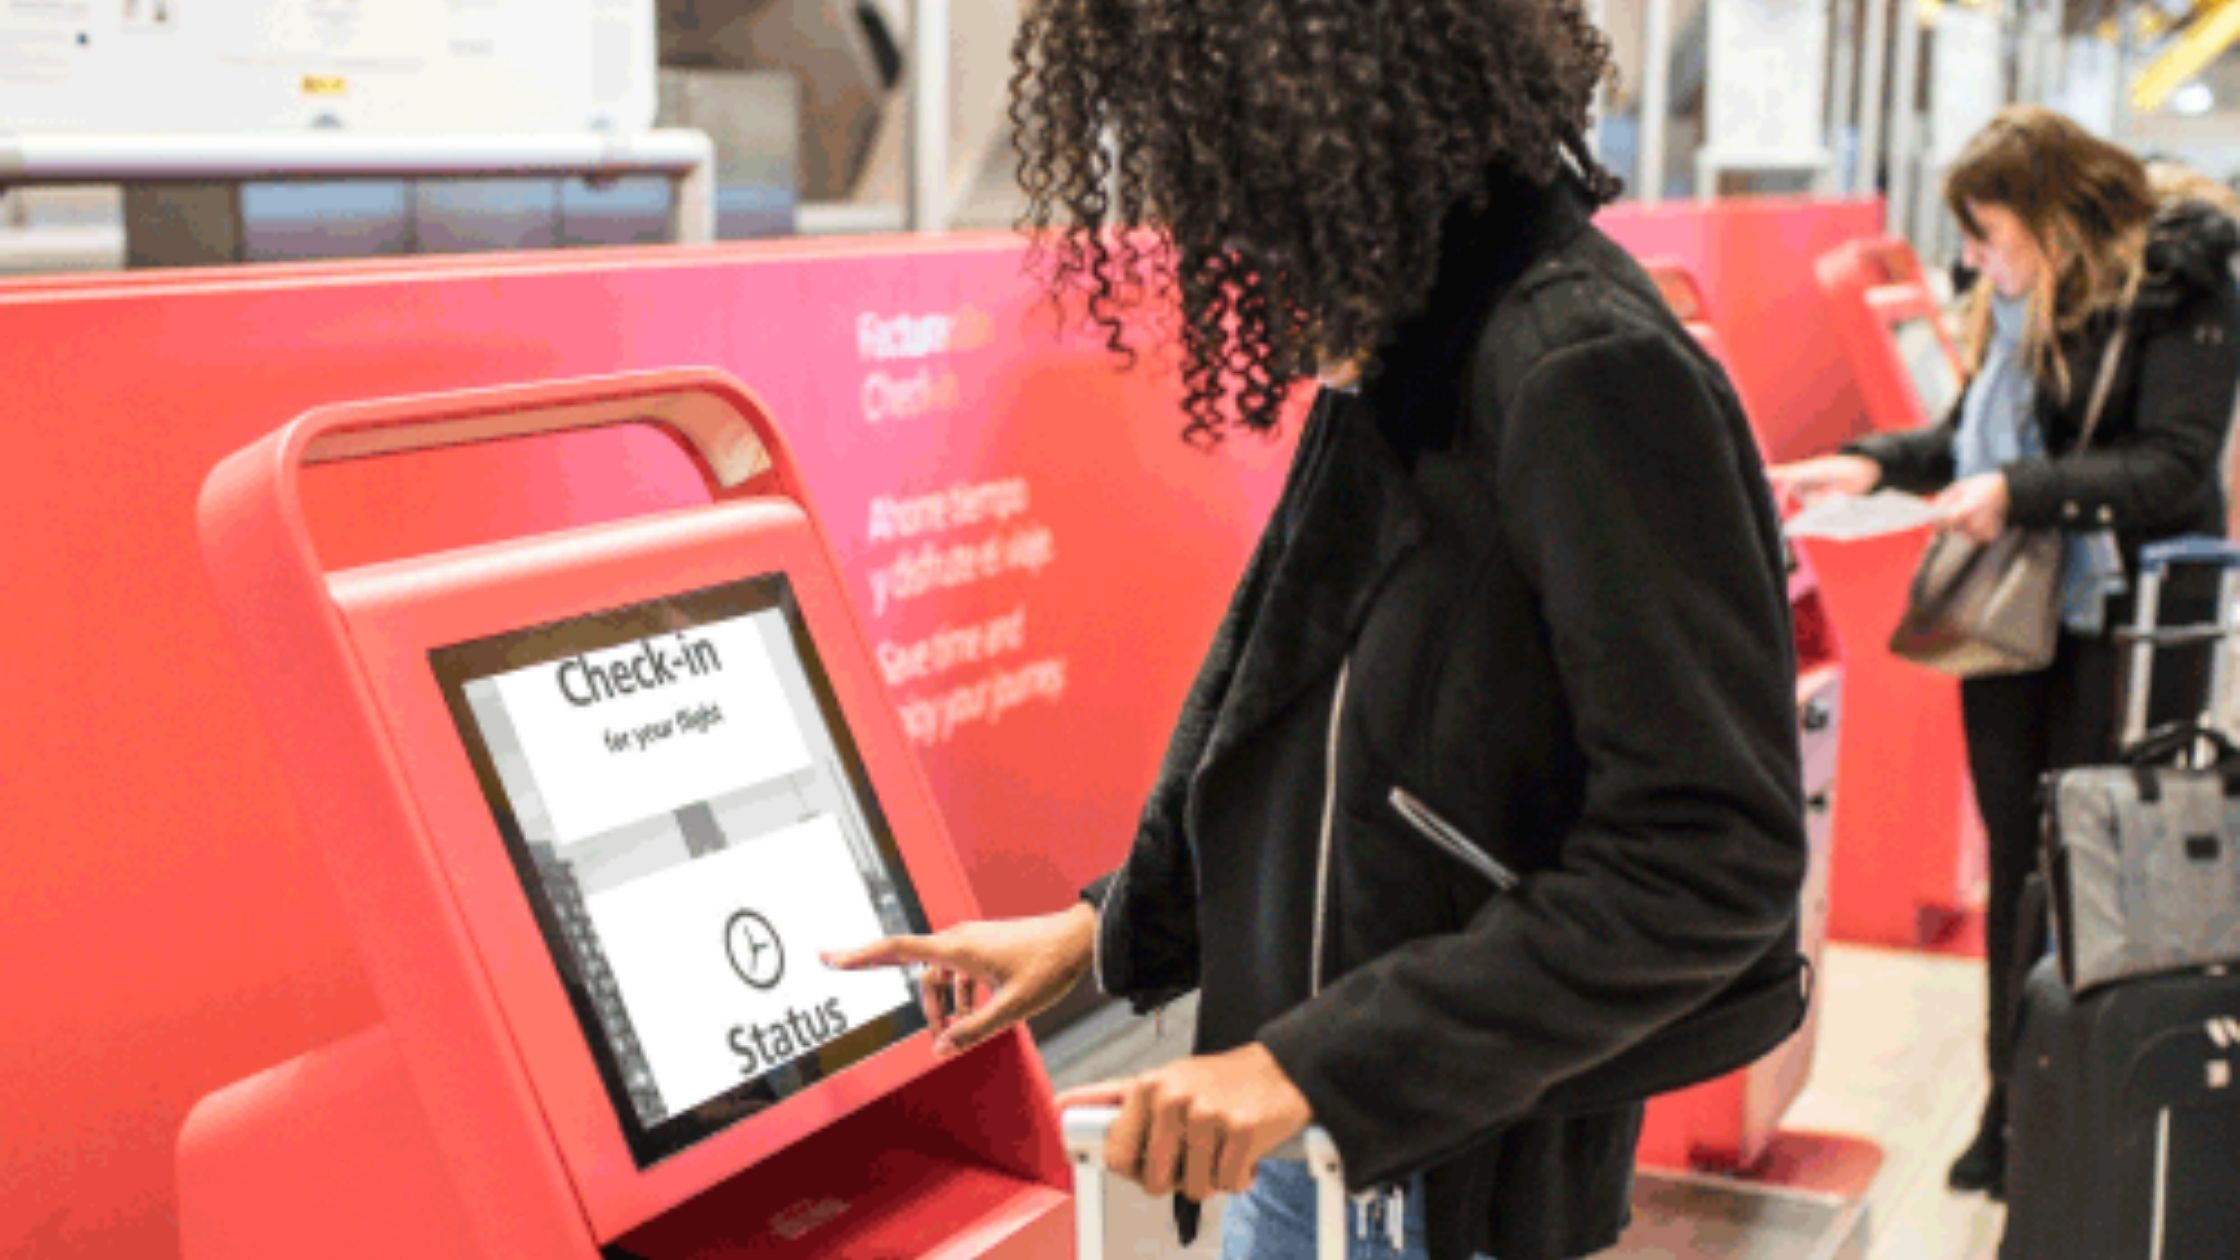 Image shows person using a self service kiosk screen to check in at an airport.  The screen has an enhanced display with large text.